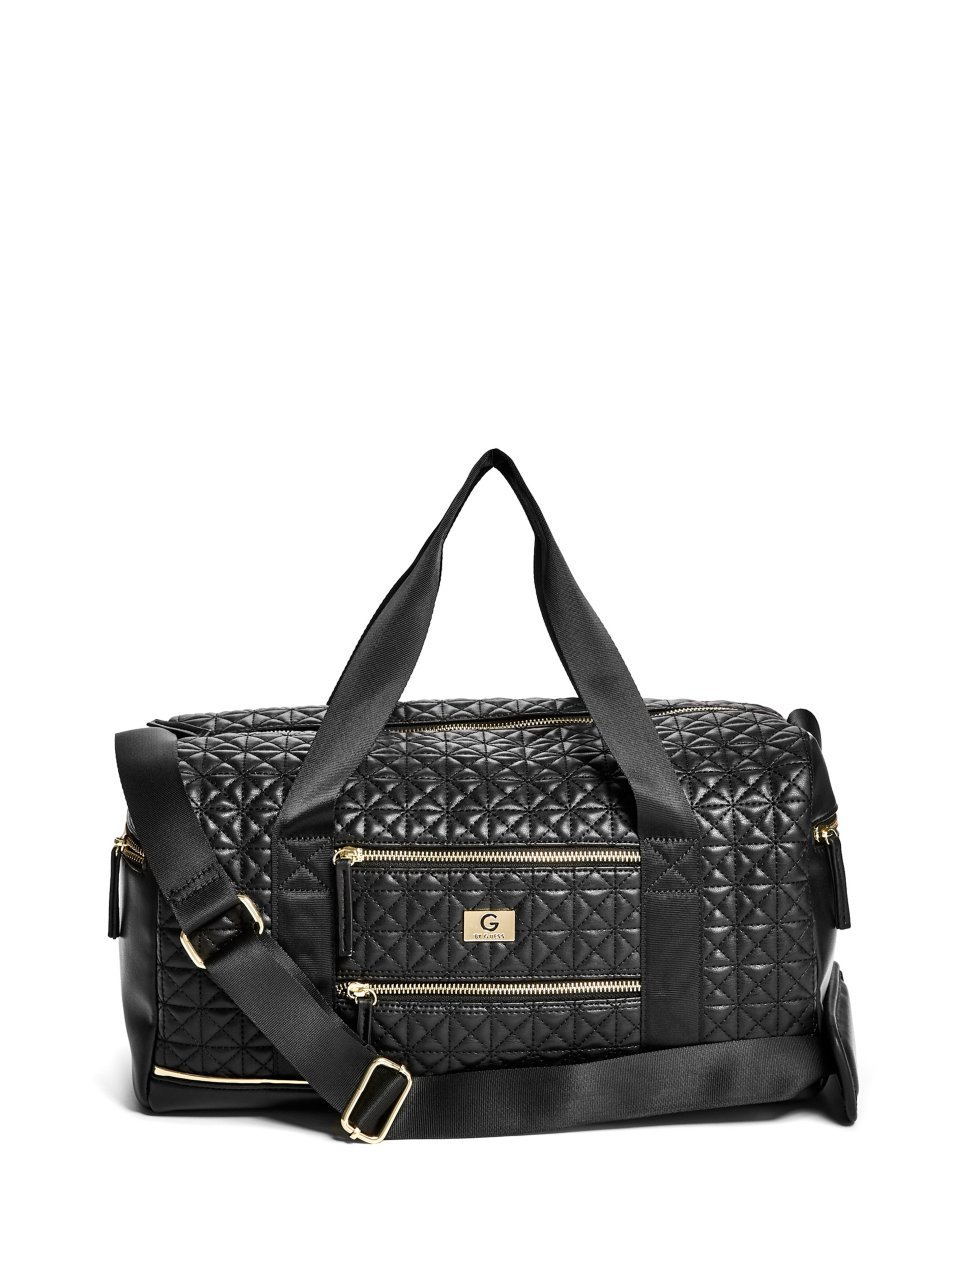 G by GUESS Women's Omerica Quilted Duffle Bag